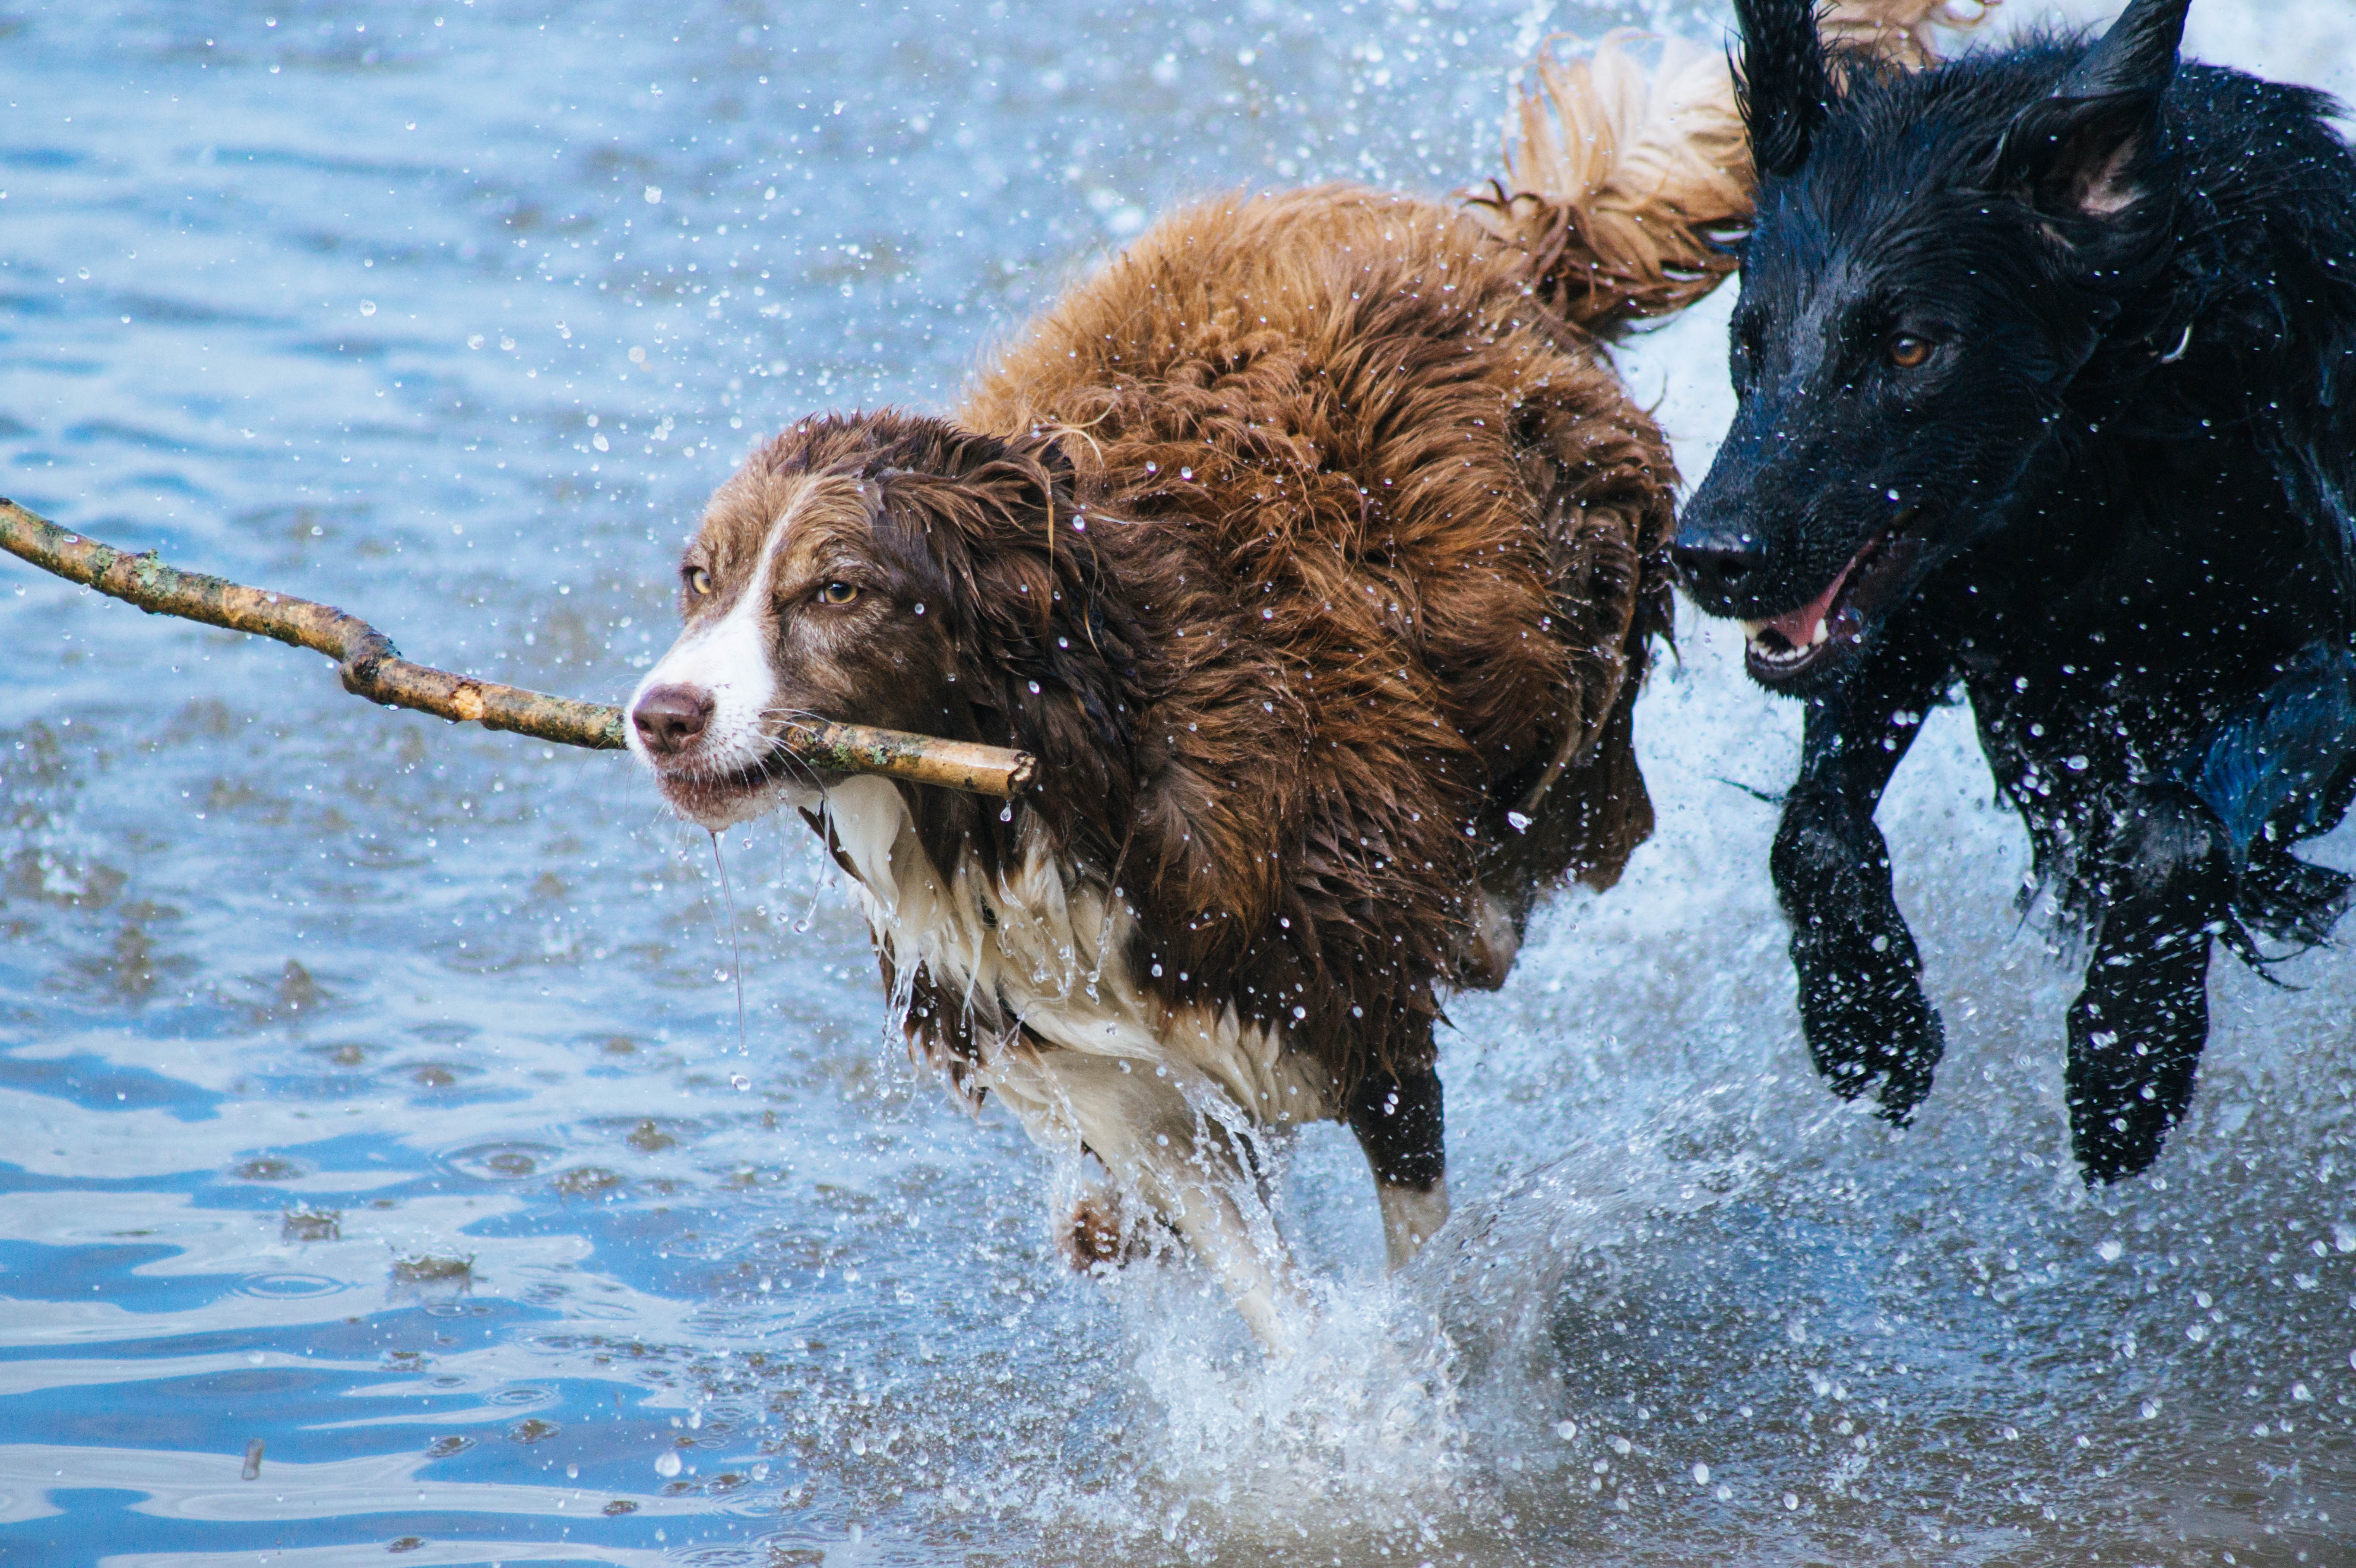 dogs running through water with stick